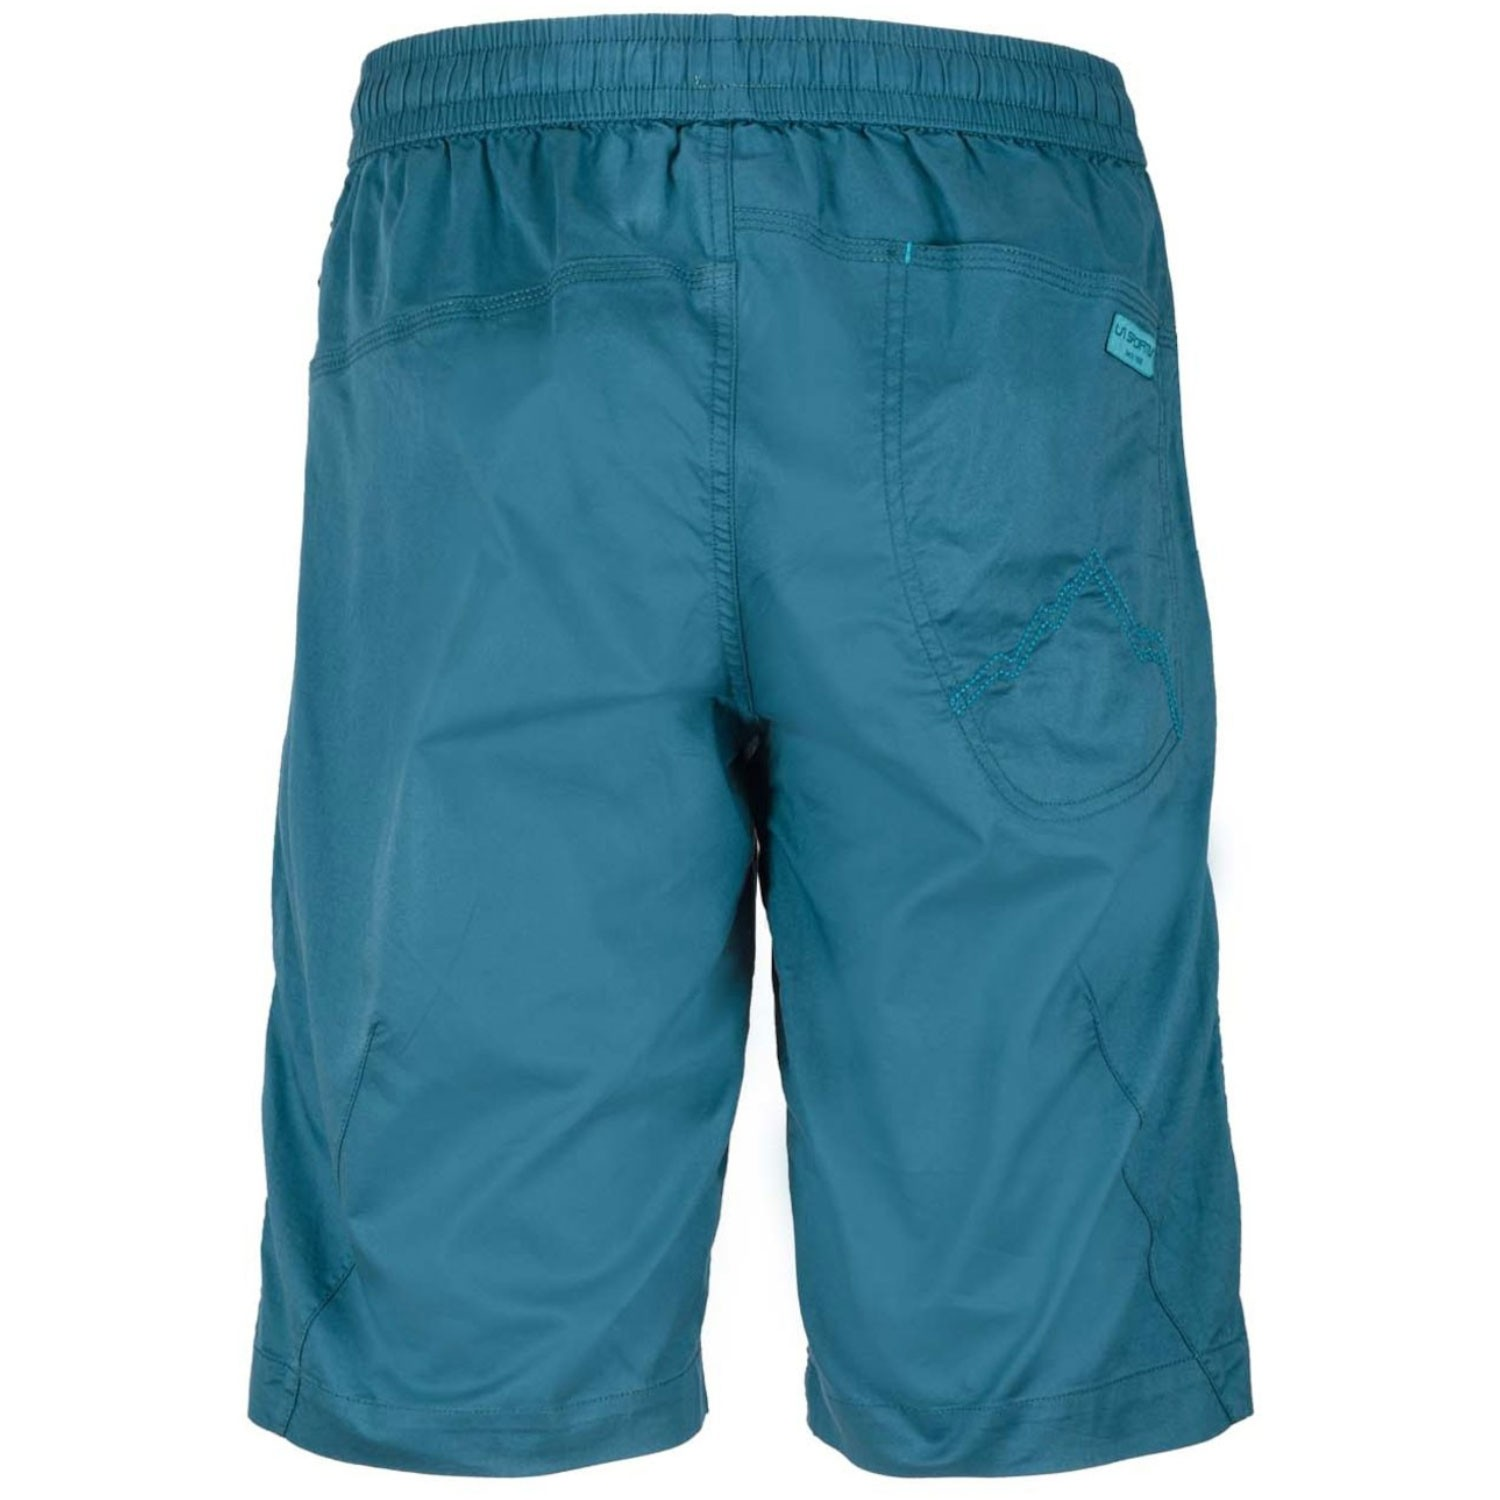 La Sportiva Levanto Men's Shorts - Lake - back